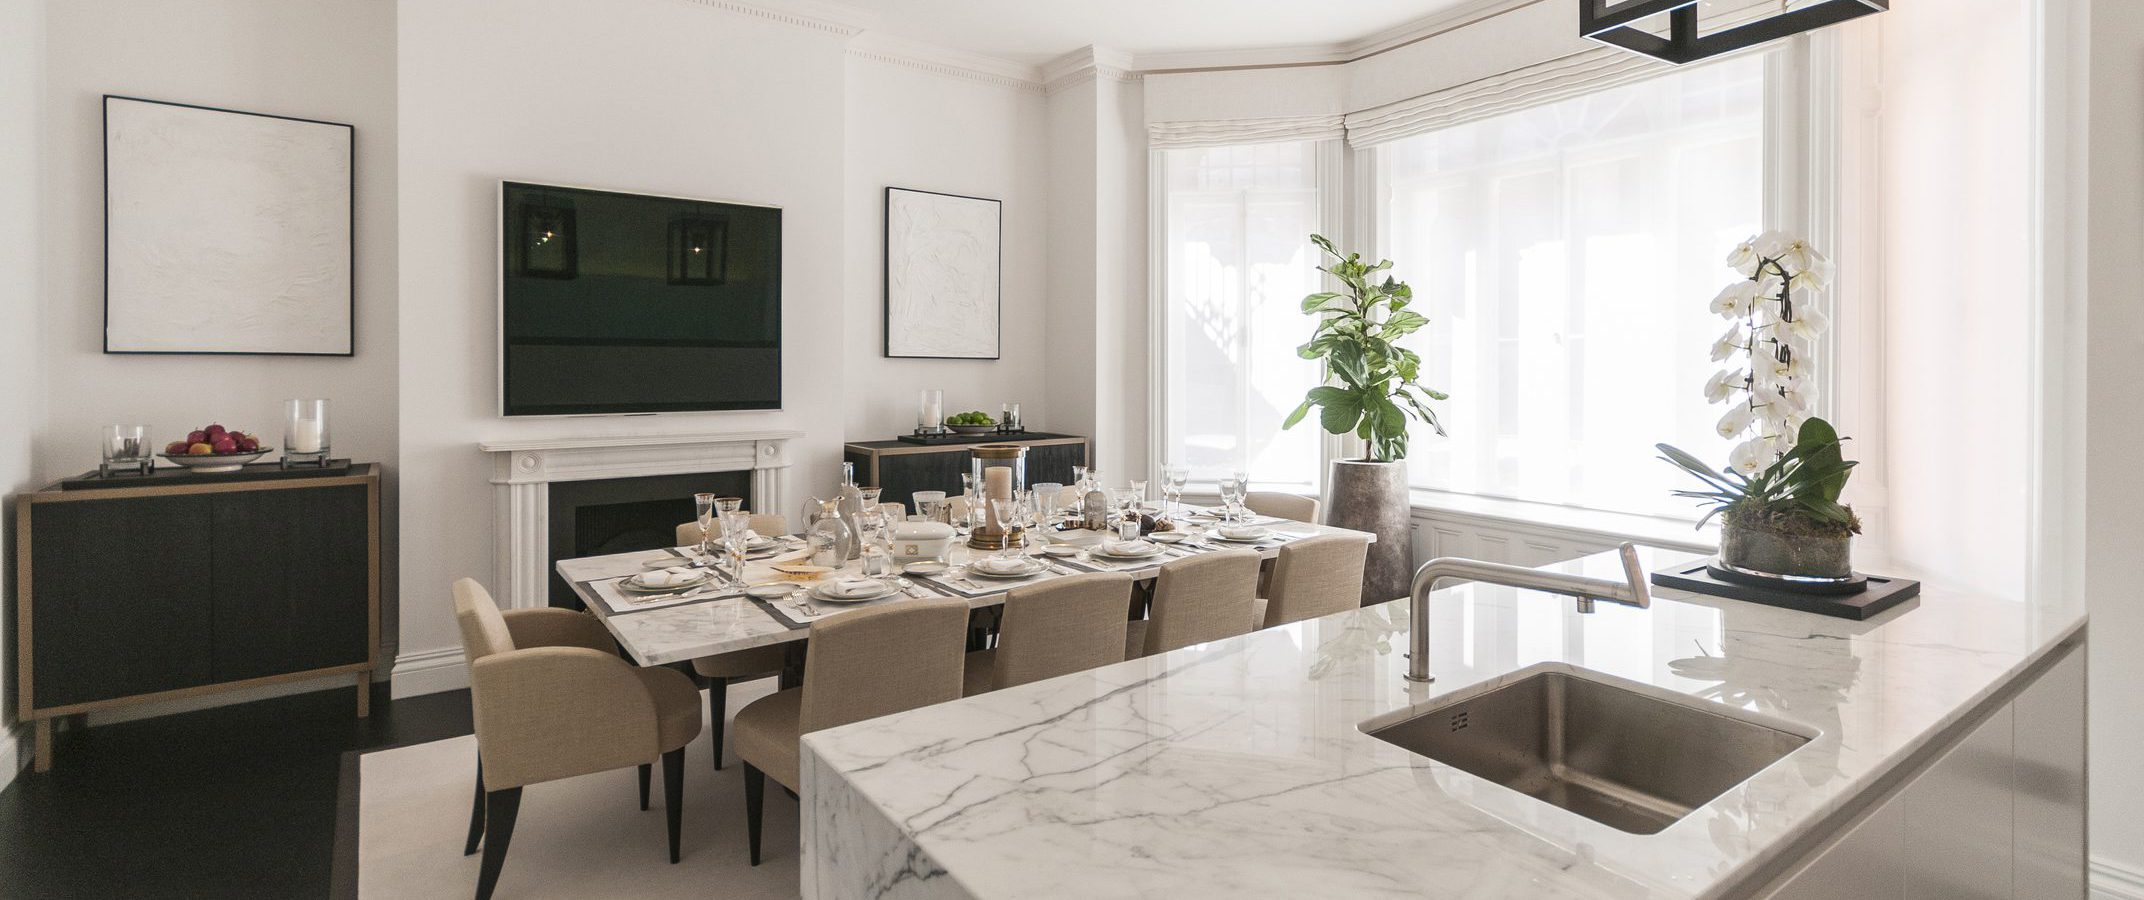 Dining_Room_Pont_Street_Marble_Island_Kitchen_Plants_Cover_House_Place_Dining_Room_Secretcape_Colour_Luxury_Art_Interiordesign_London_Delux_Elegant_Lights_Grand_Interior_Design